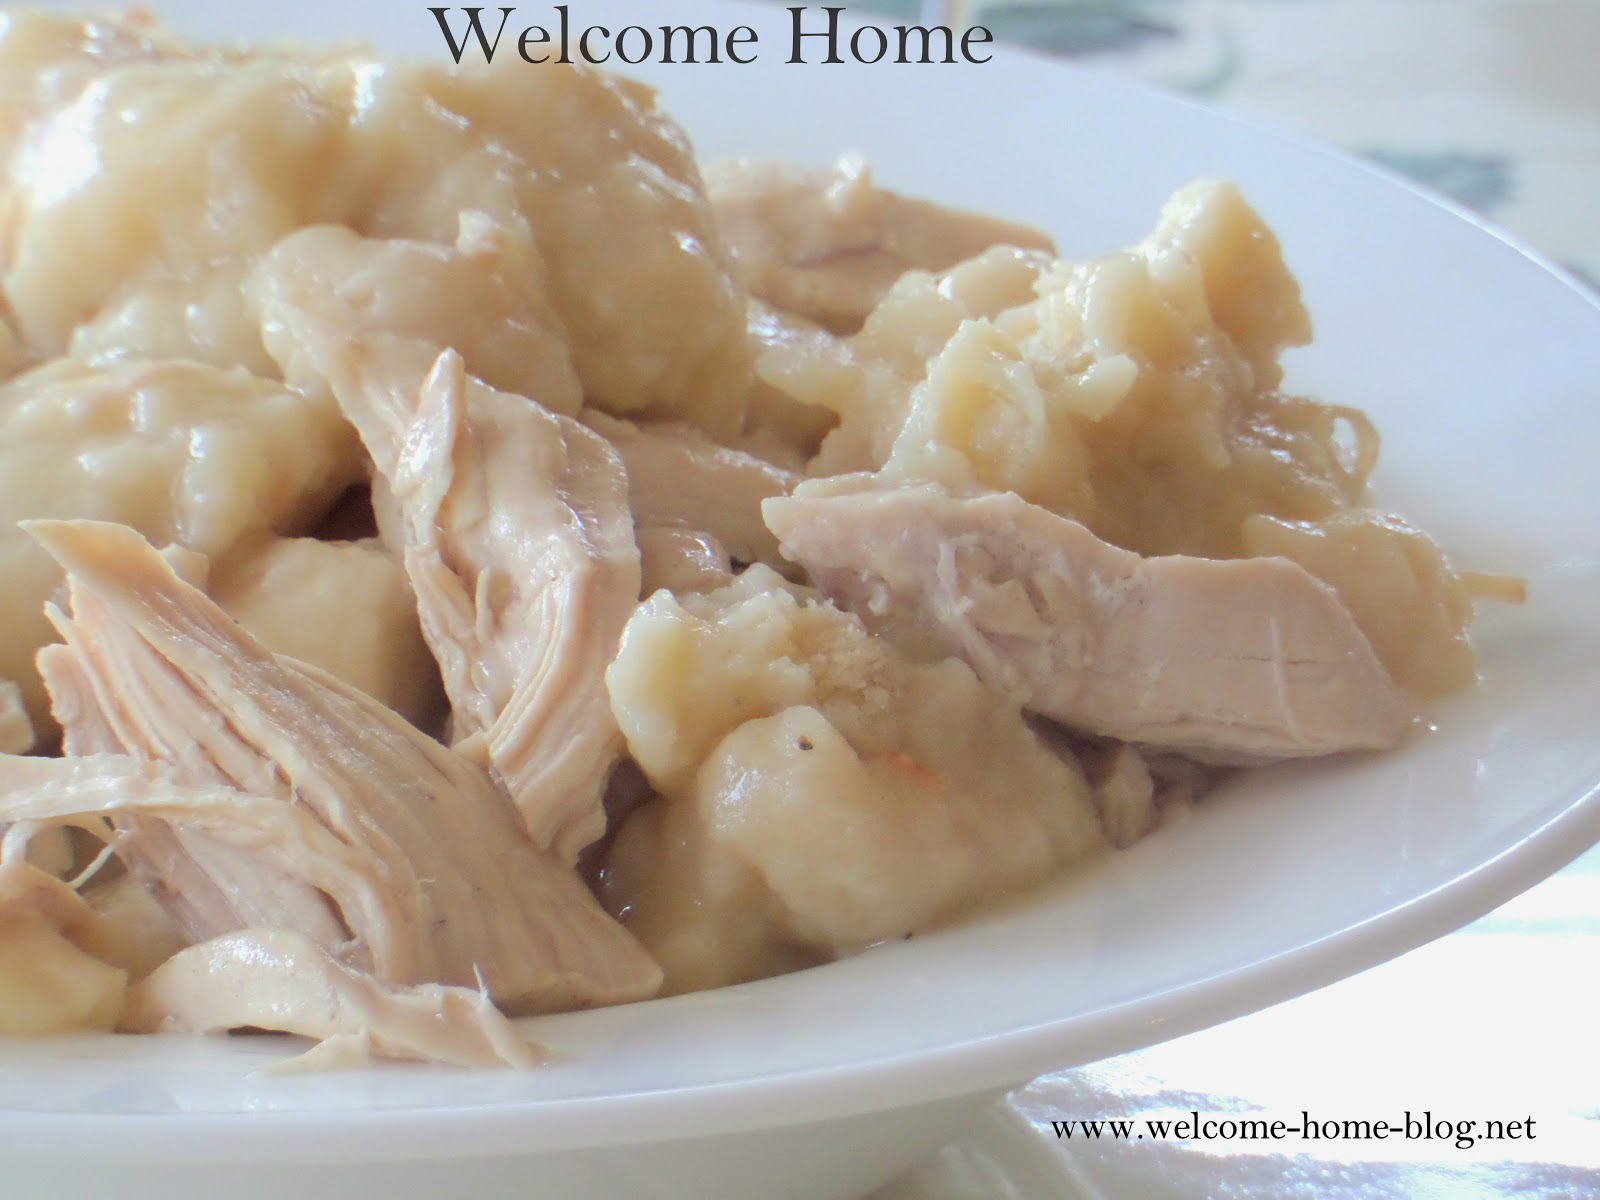 Welcome Home Blog: Turkey and Buttermilk Dumplings